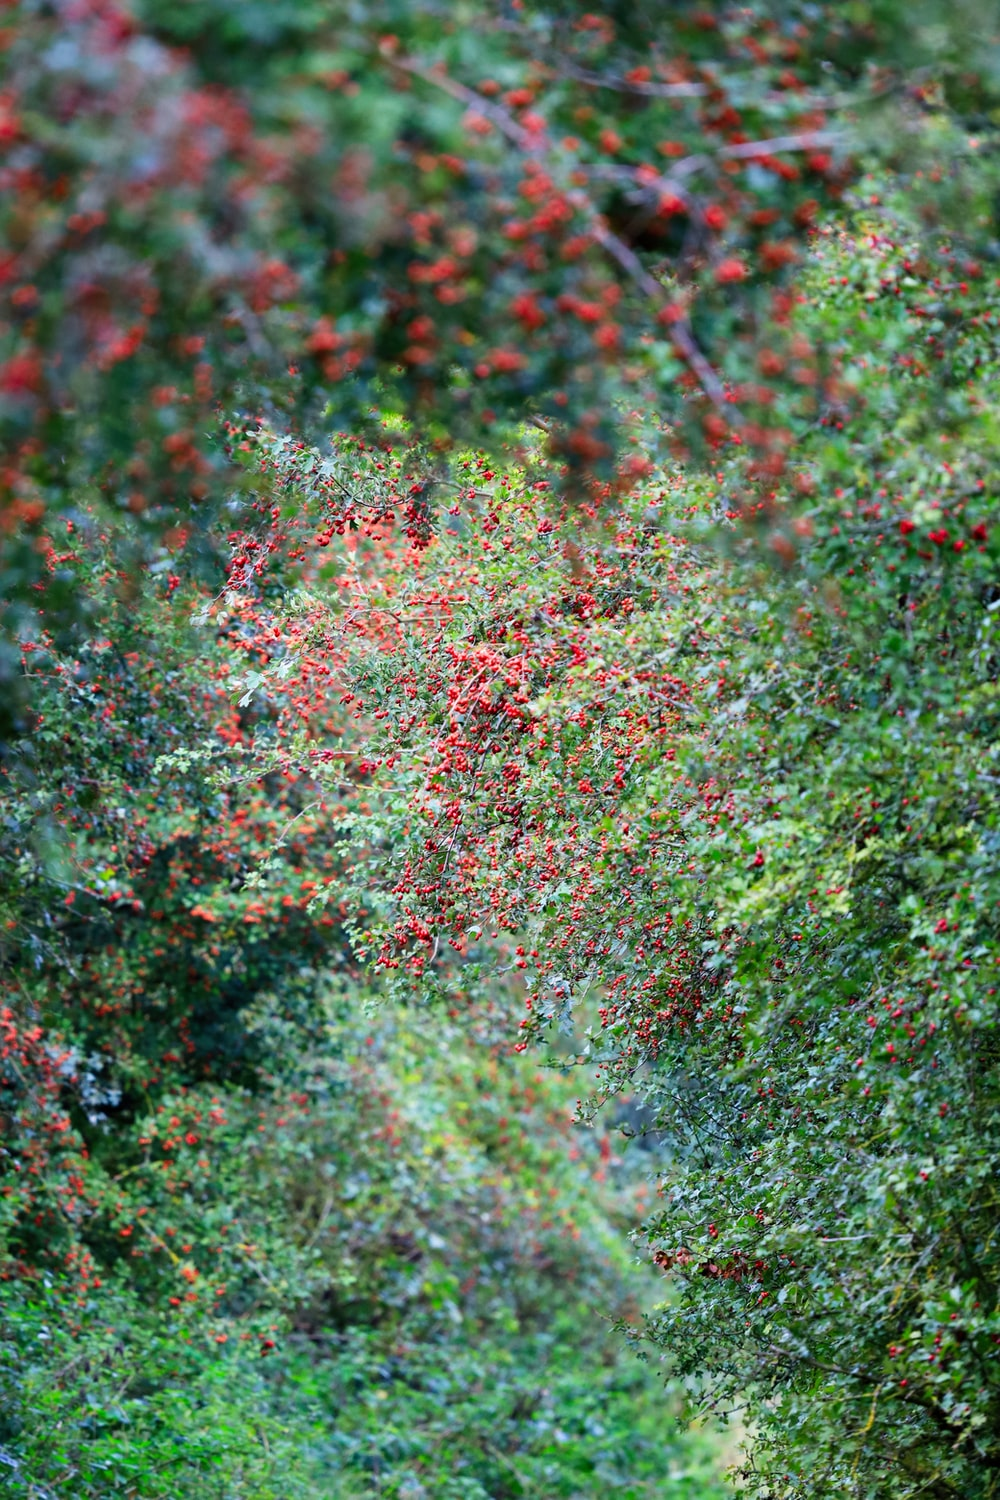 green and red plant during daytime